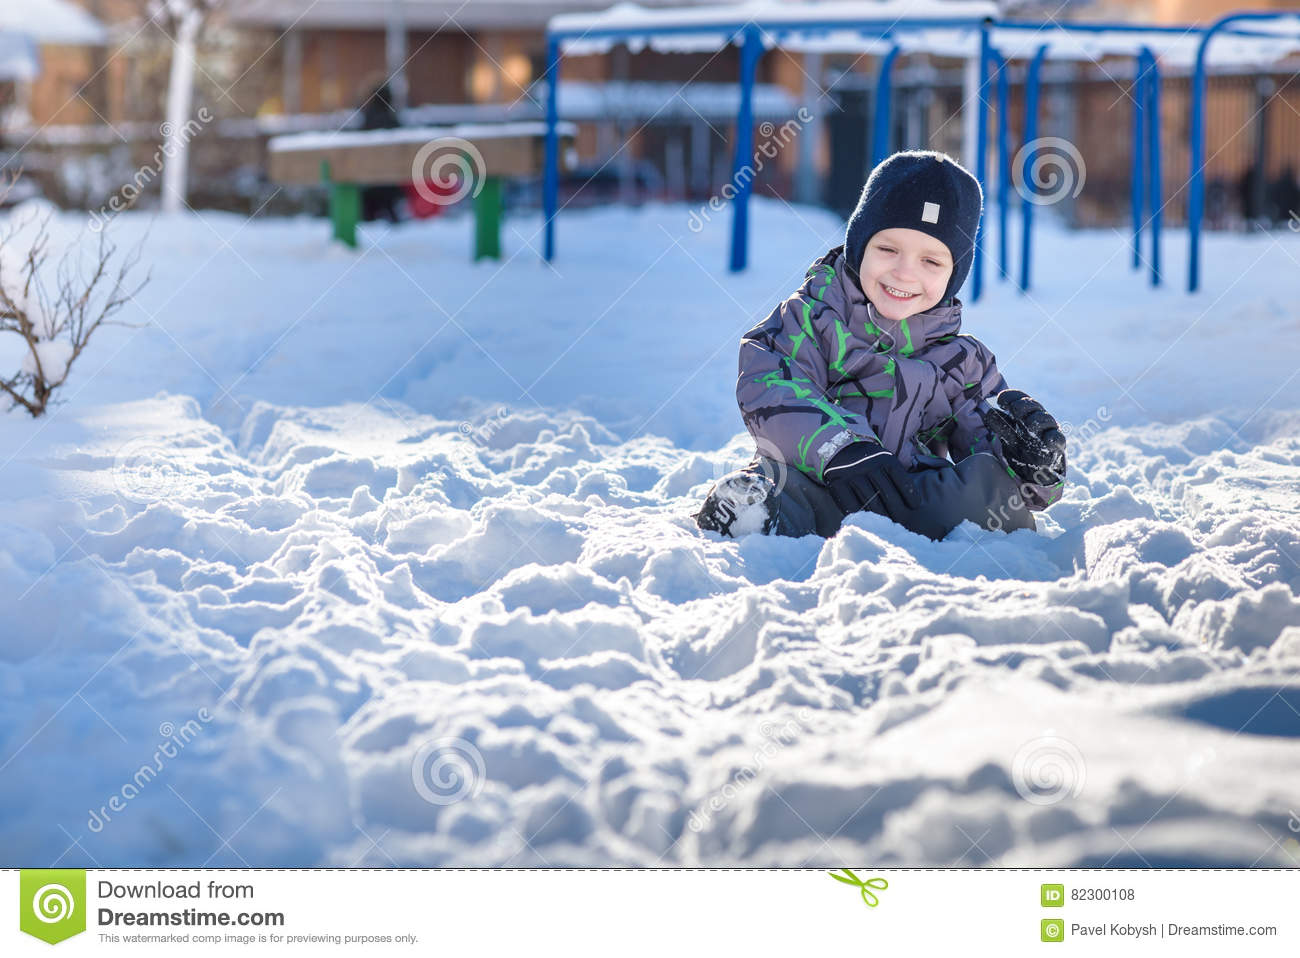 4c6190687be boy-jumping-snow-happy-kid-walking-outdoors-winter -city-child-smiling-having-fun-82300108.jpg